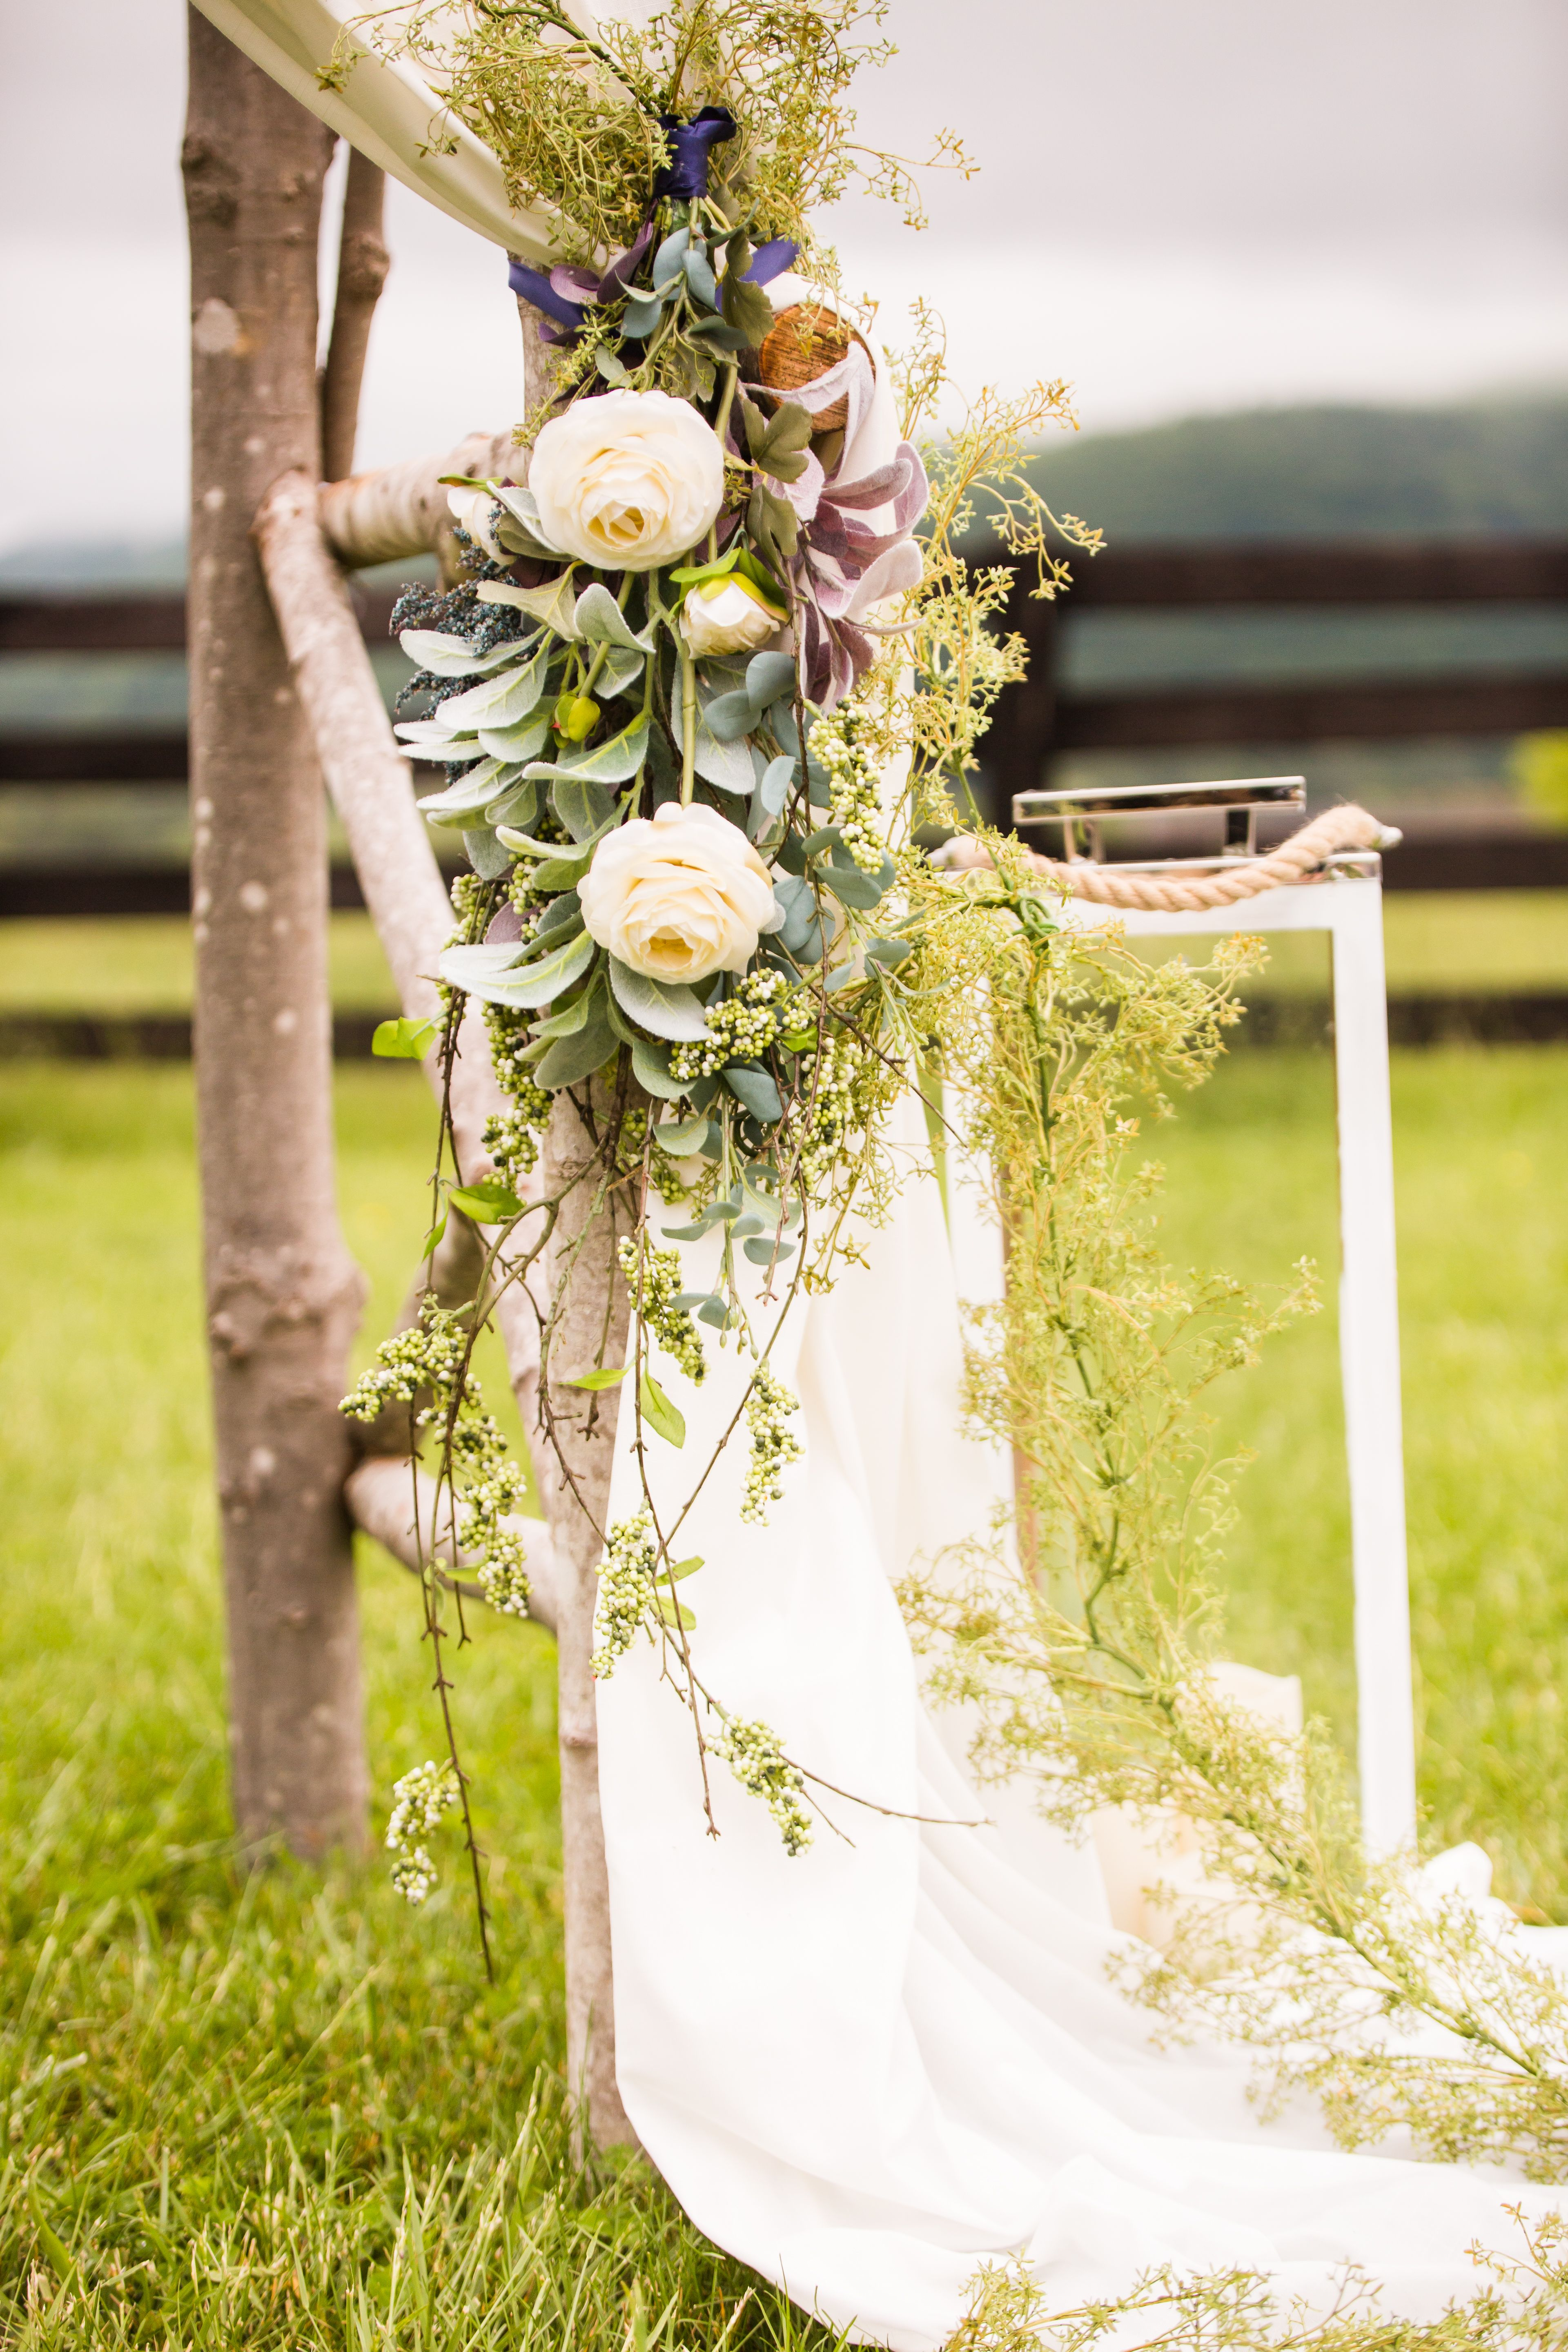 Wedding planning diy flowers and alter girls dream diy wedding wedding planning diy flowers and alter actually ashley solutioingenieria Image collections